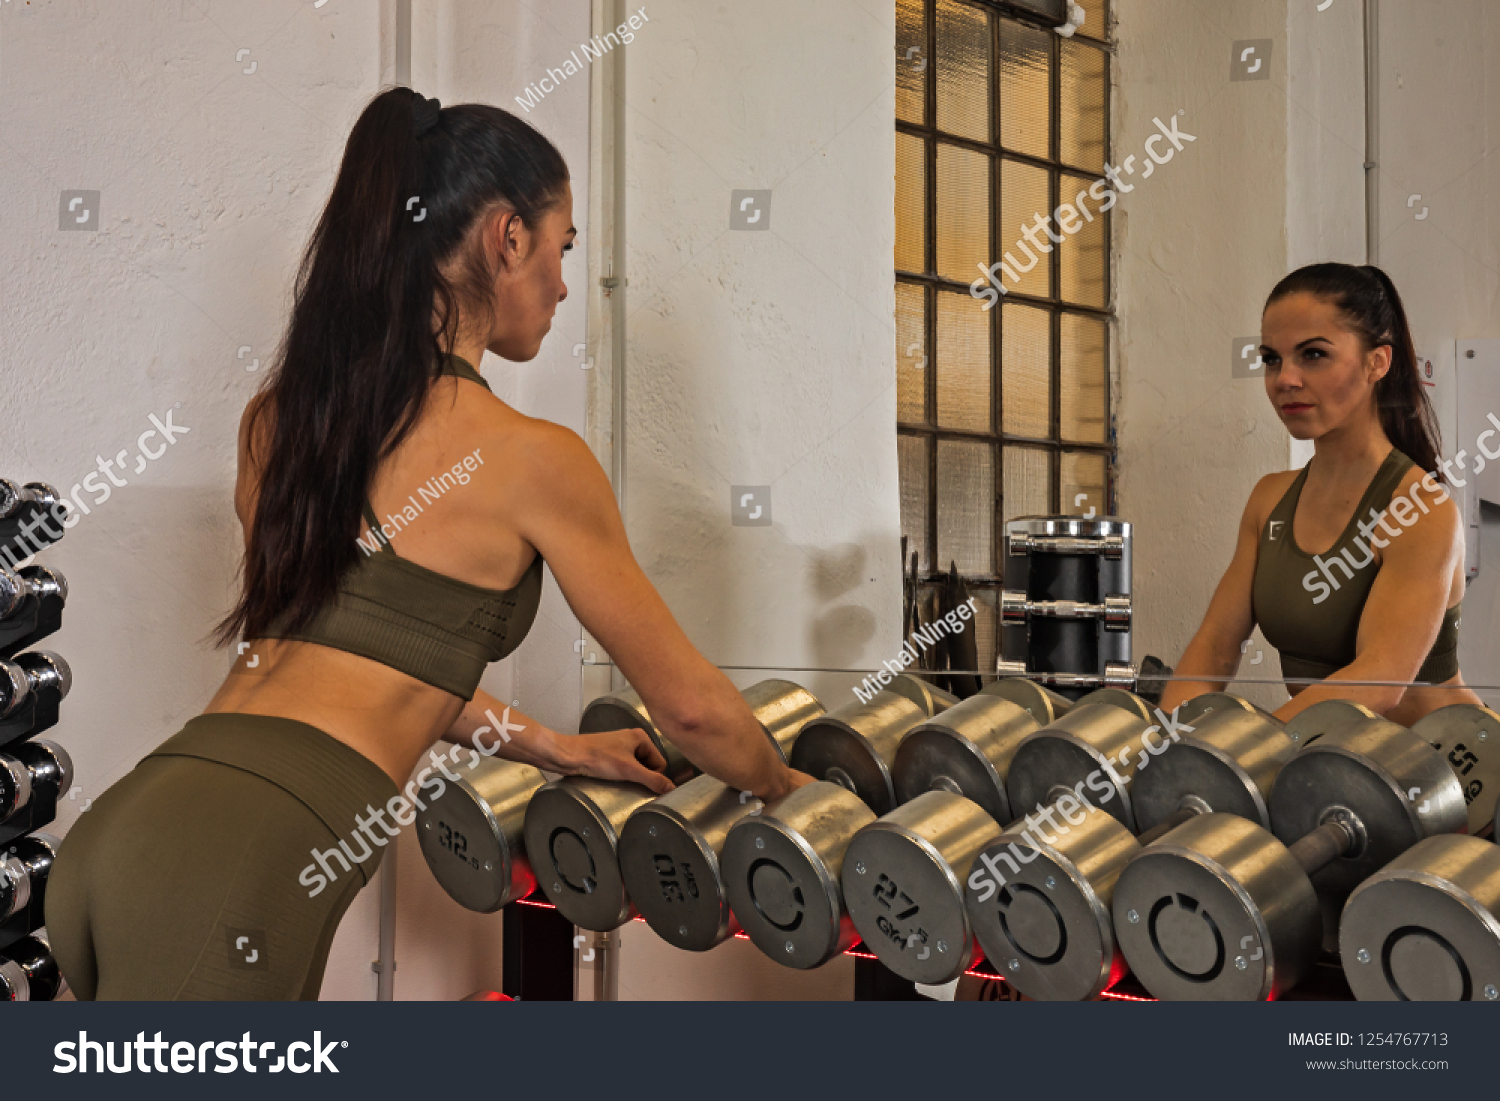 https://image.shutterstock.com/z/stock-photo-athletic-woman-takes-dumbbells-into-her-hand-in-front-of-the-mirror-1254767713.jpg